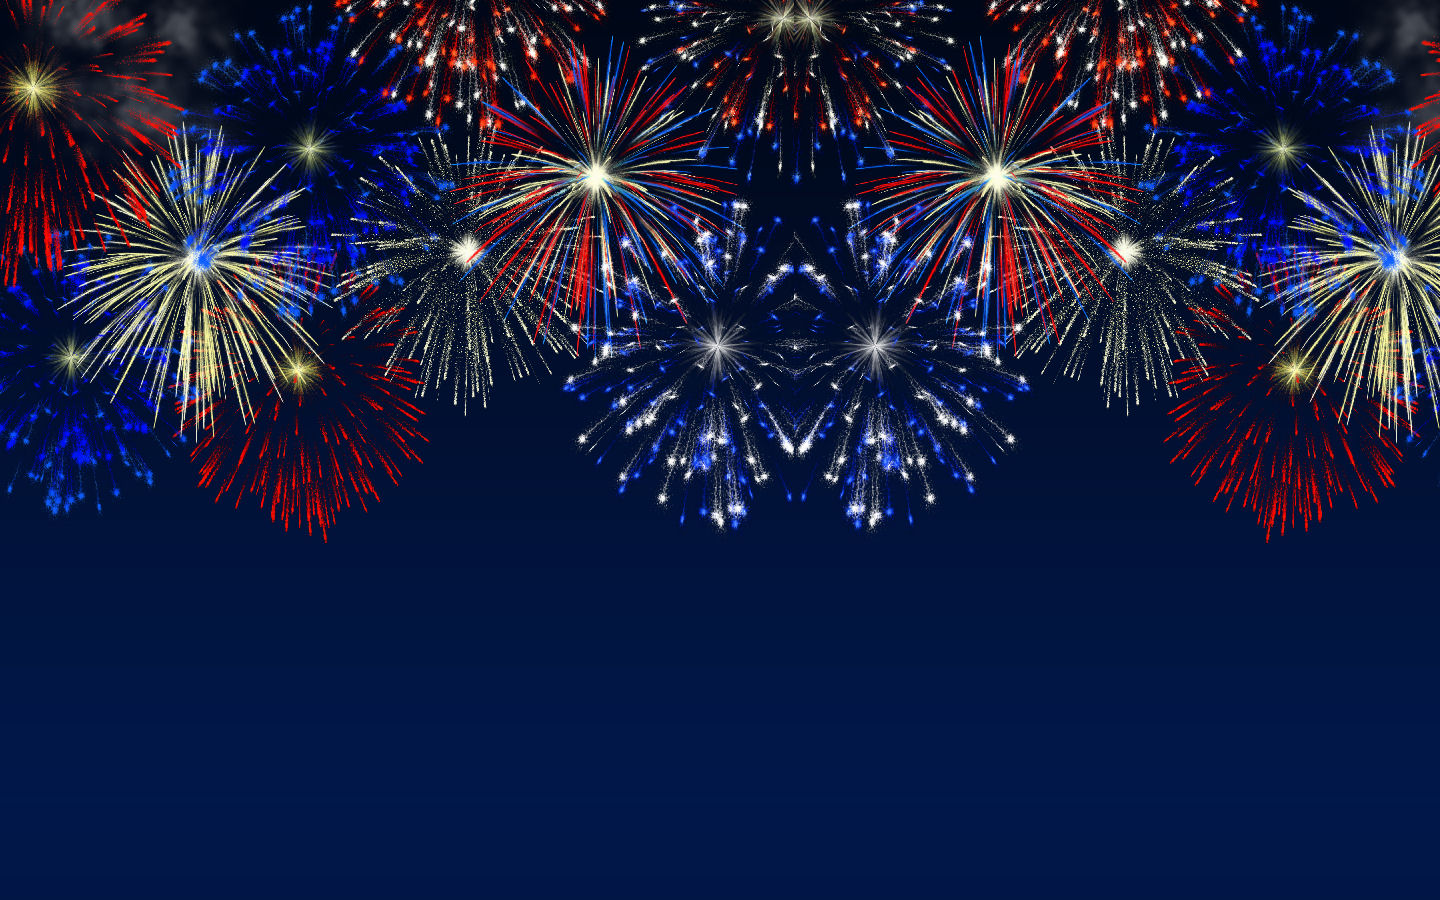 Fireworks clipart blue background WallpaperSafari Twitter 4th Twitter Backgrounds